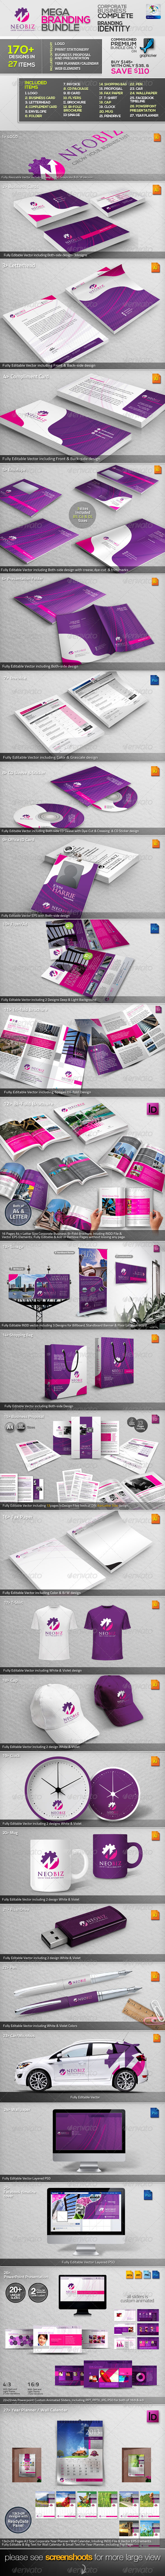 NeoBiz: Corporate Business ID Mega Branding Bundle - Stationery Print Templates